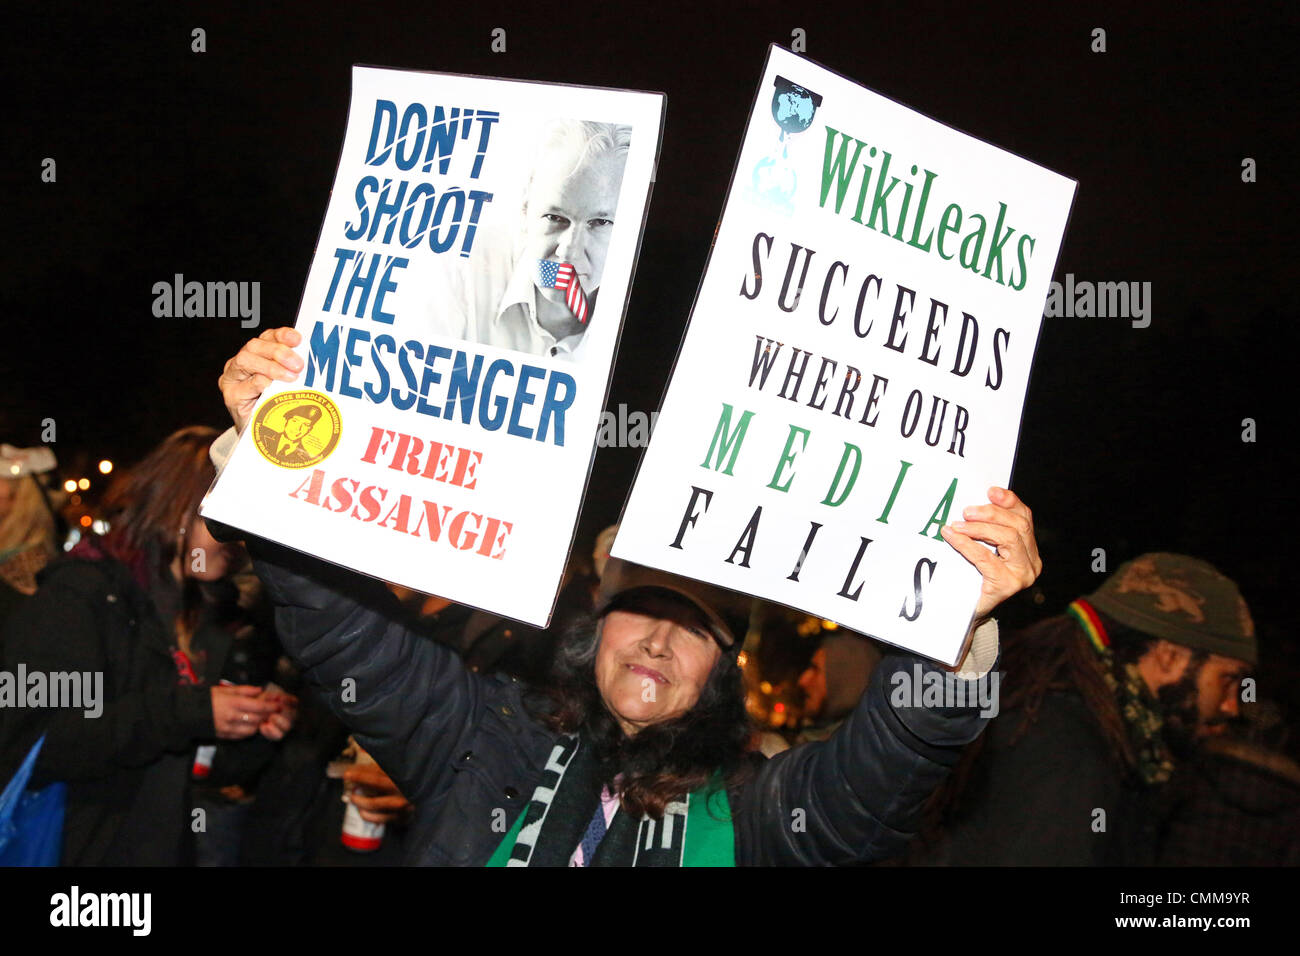 London, UK. 5th November 2013. Protestor with pro Wikileaks placards at the 5th November protests in Parliament - Stock Image